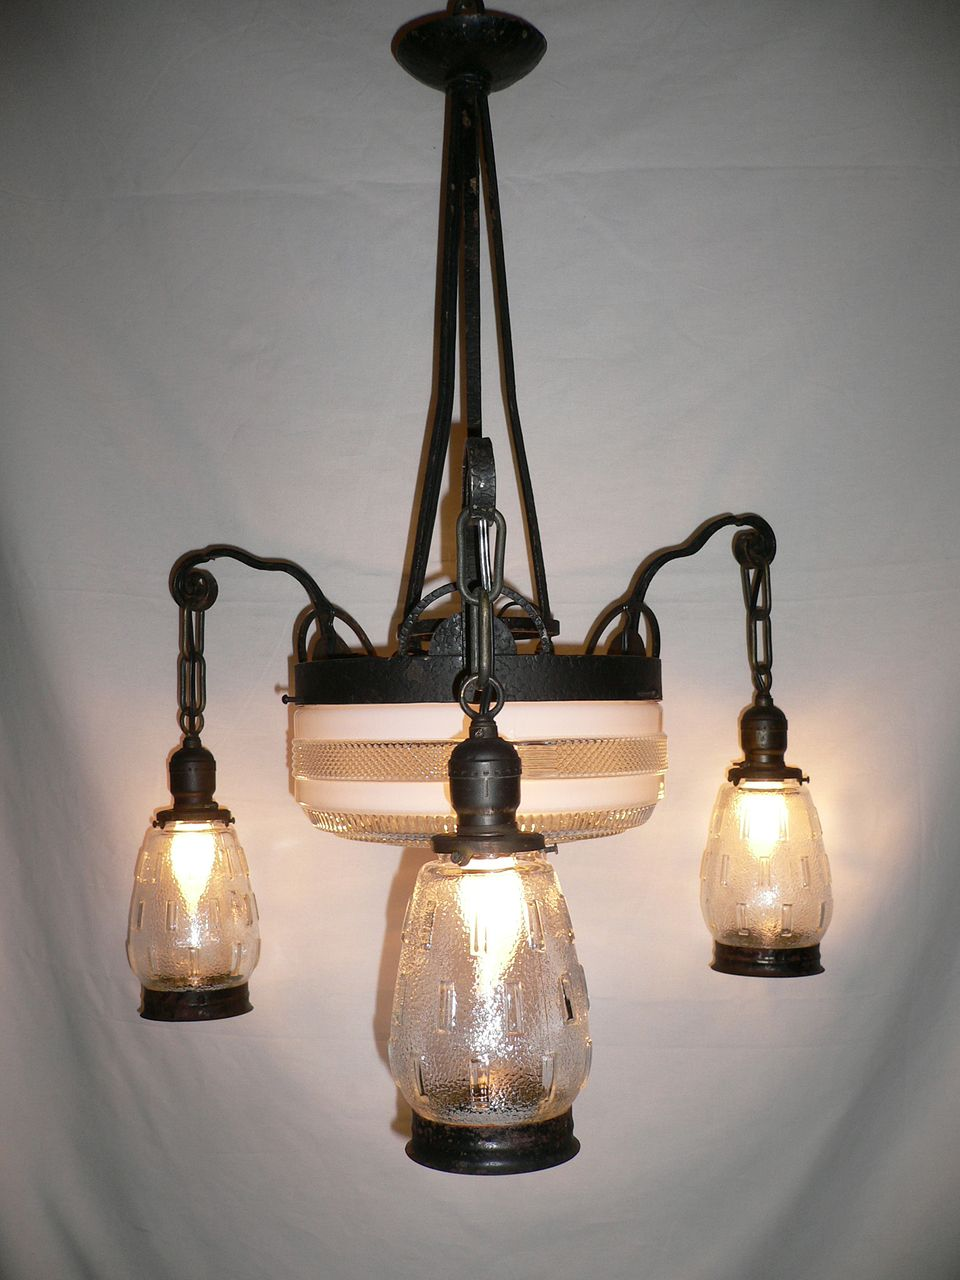 Fantastic French Art Deco Iron & Glass Antique Chandelier